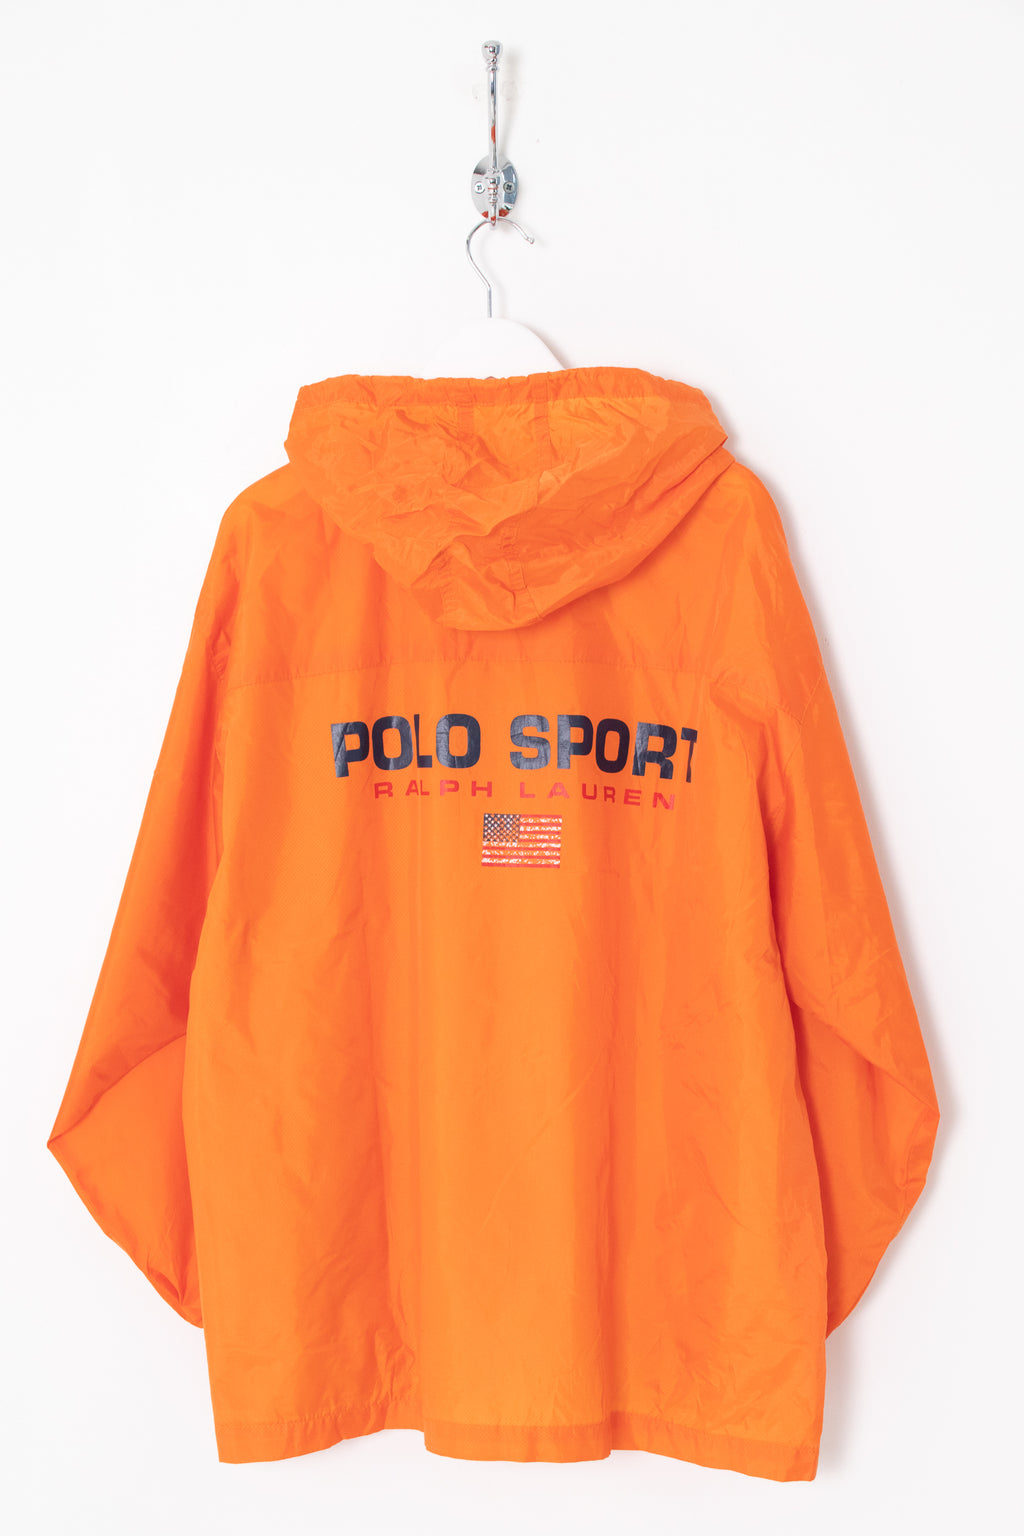 Ralph Lauren Polo Sport Windbreaker (XL)